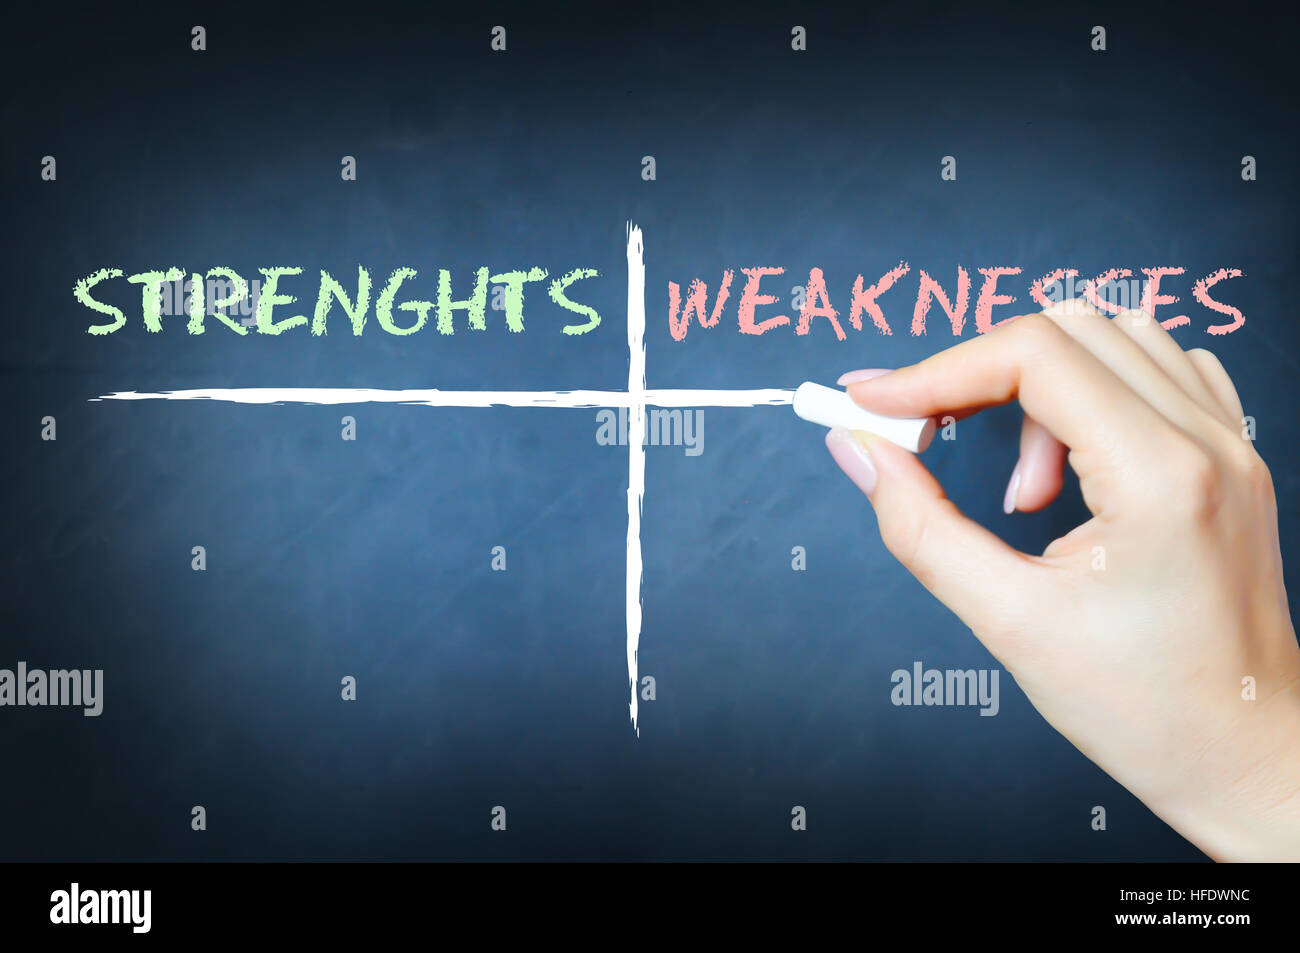 What are your strengths and weaknesses - Stock Image